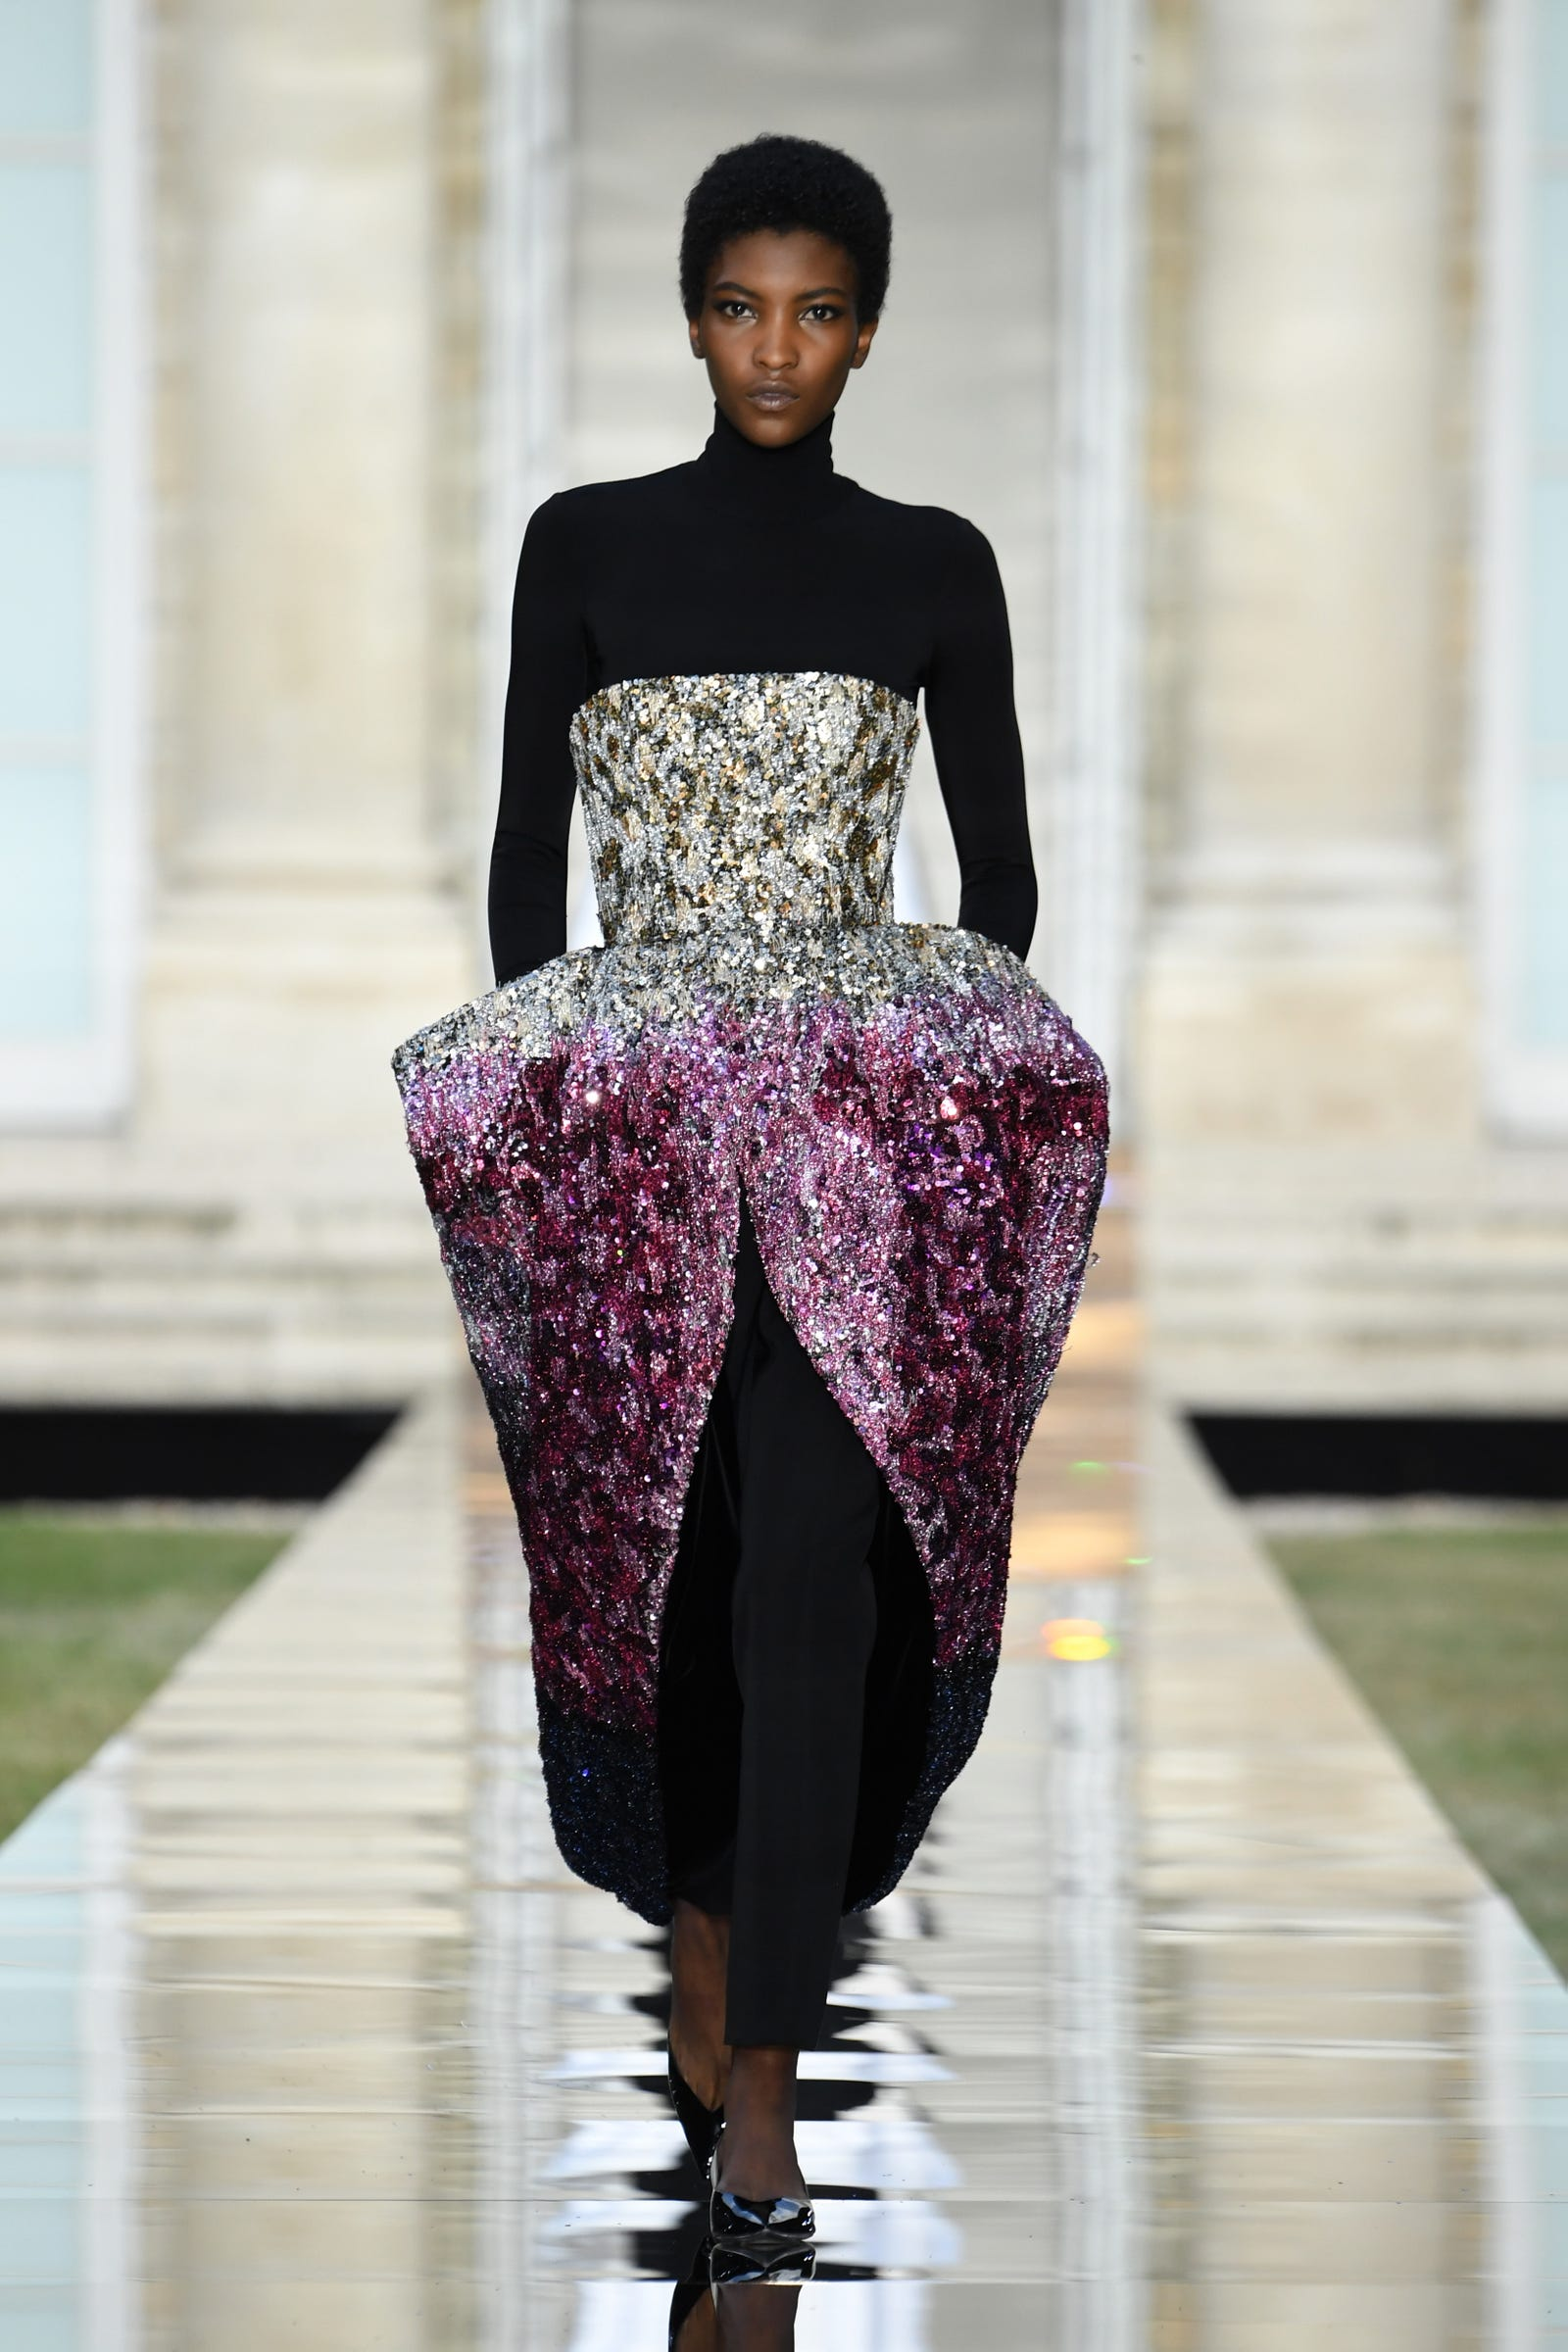 A model walks the runway during the Givenchy Haute Couture Fall Winter 2018/2019 show as part of Paris Fashion Week on July 1, 2018 in Paris, France.